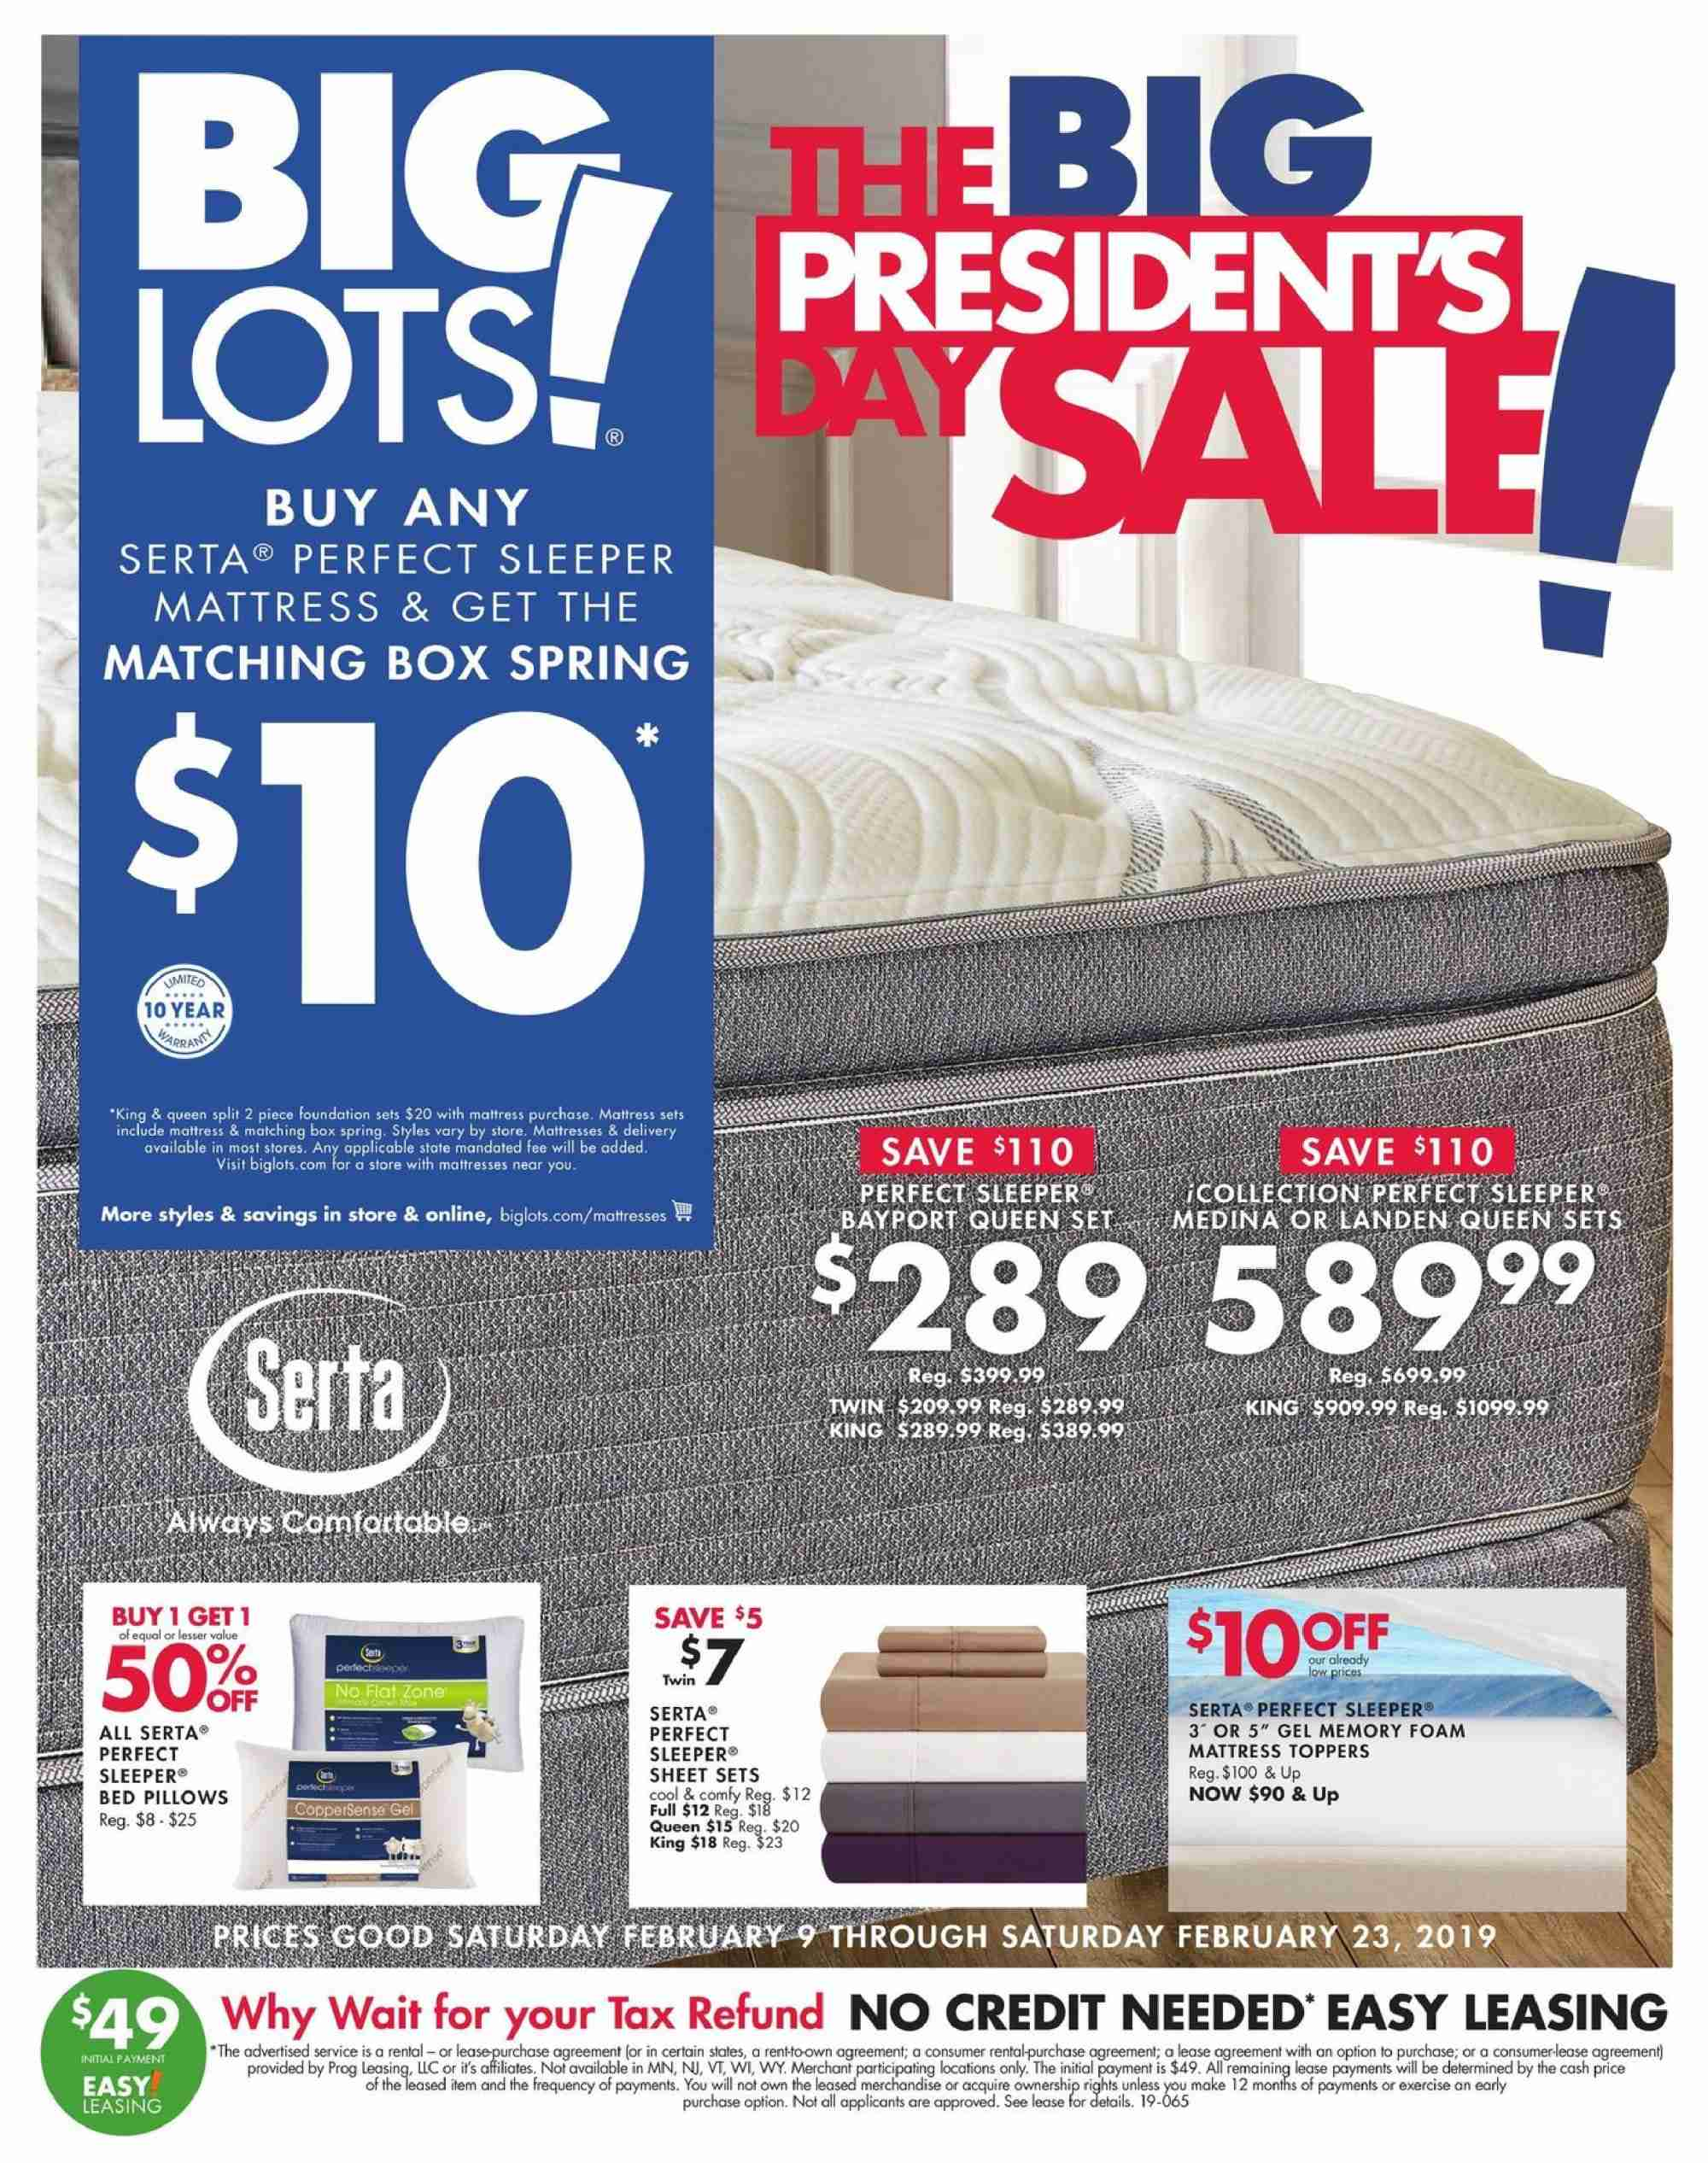 Big Lots Flyer - 02.09.2019 - 02.23.2019 - Sales products - bed, box, foam, foundation, mattress, memory foam, sheet, pillow. Page 1.